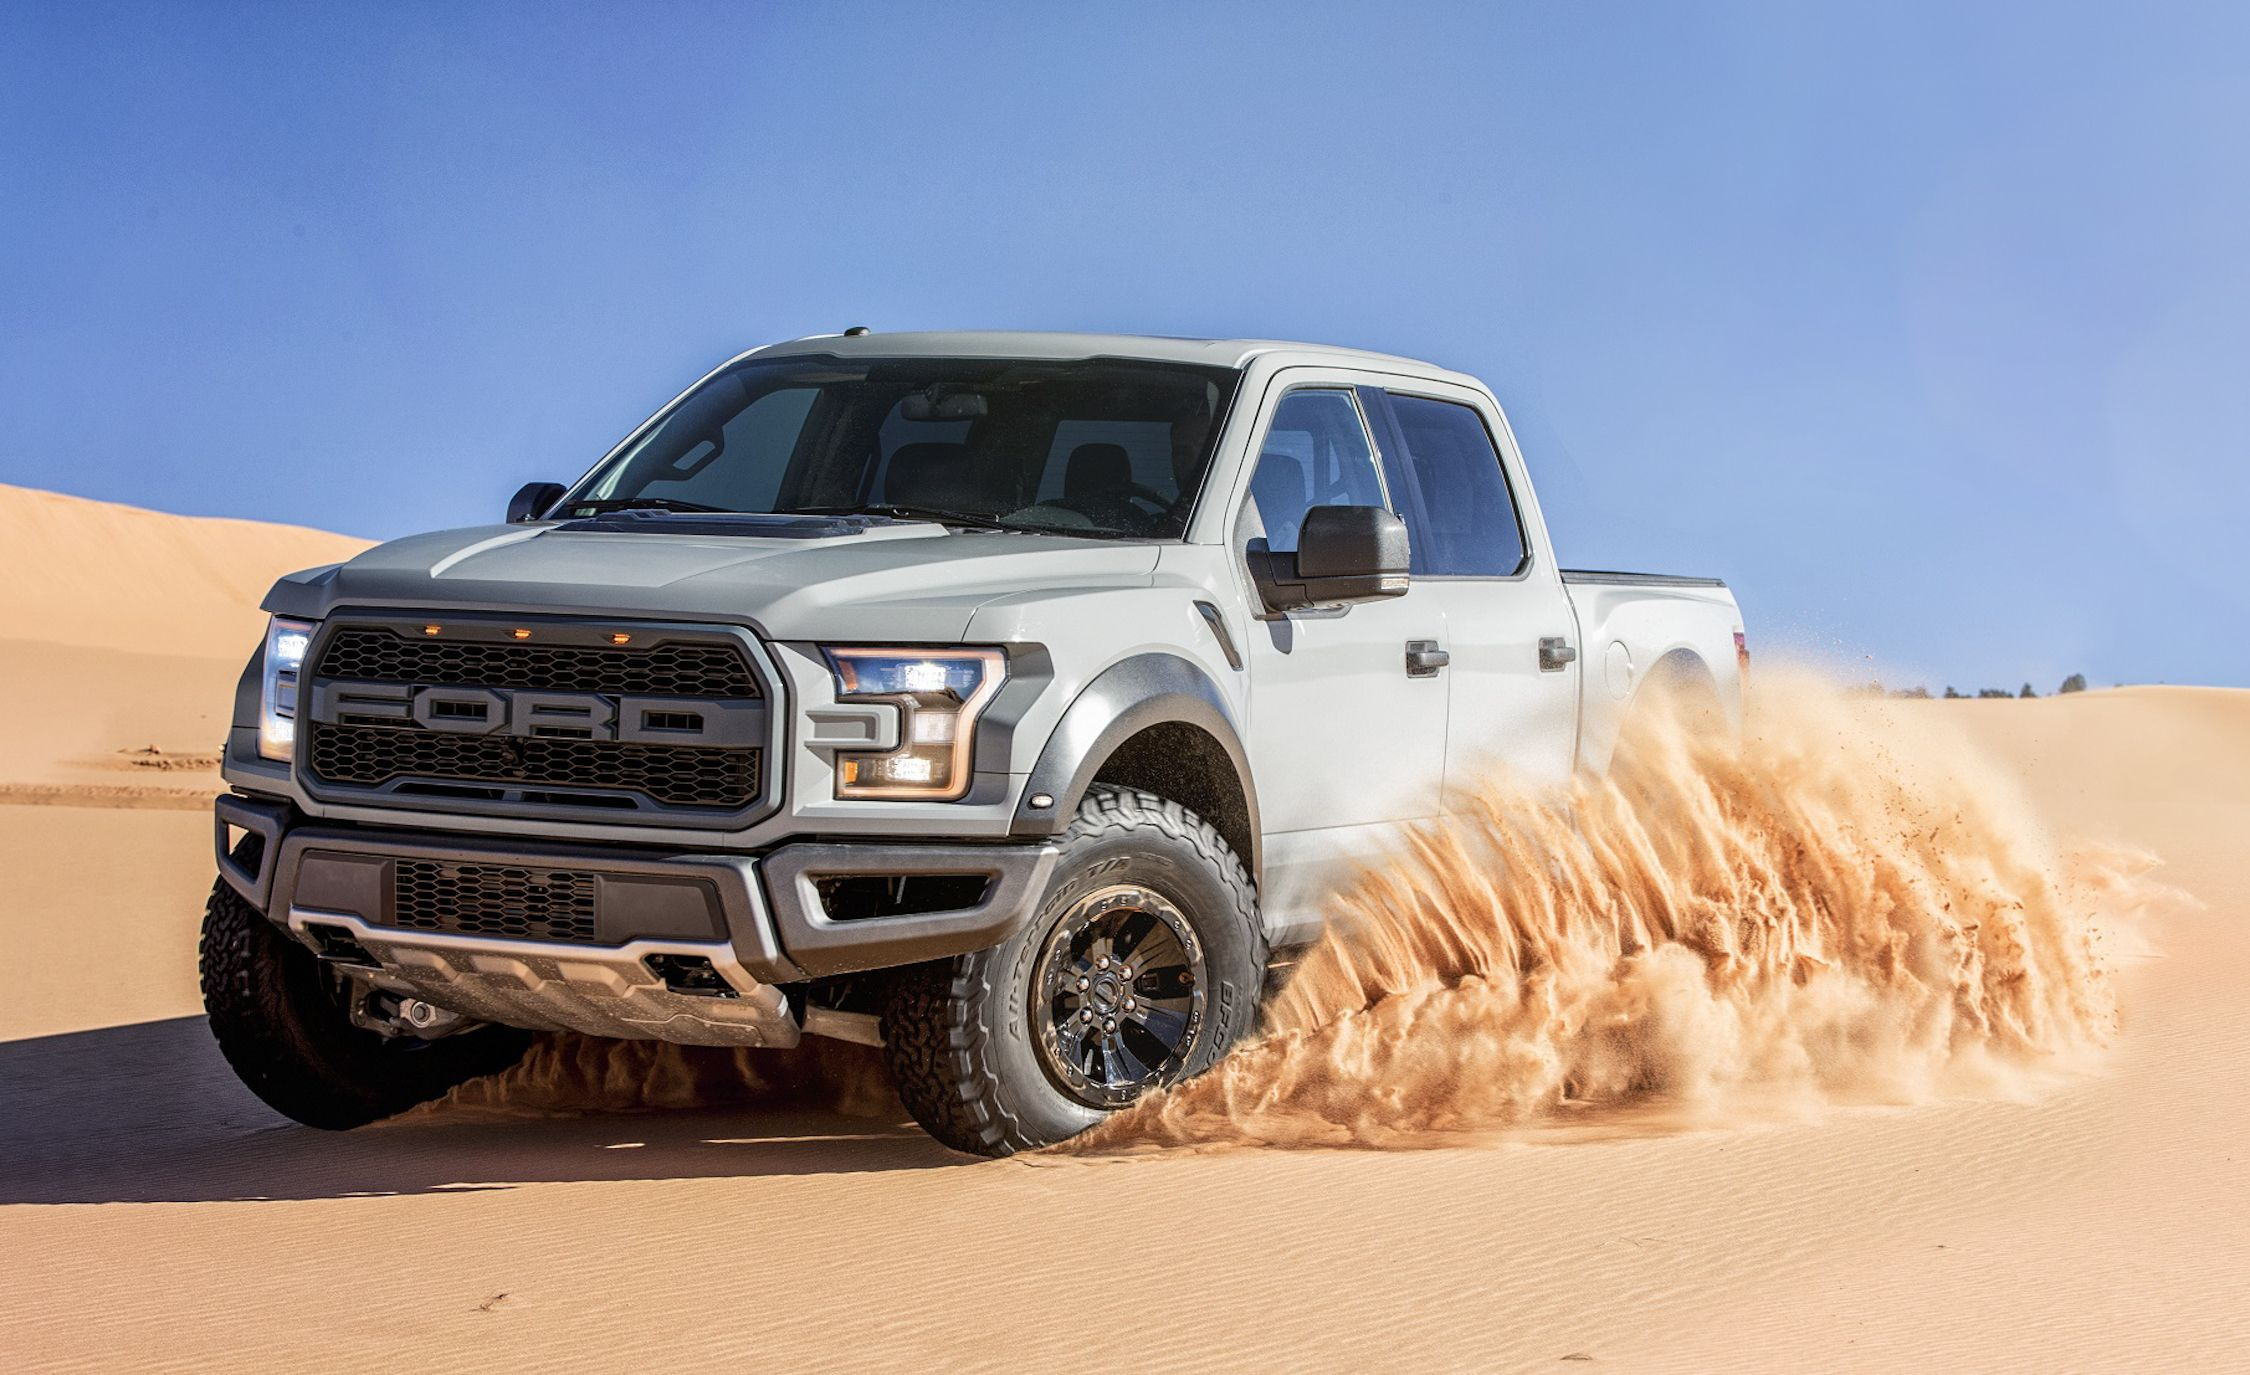 2017-Ford-F-150-Raptor-SuperCrew-106 Cool Review About Chevy S10 tow Capacity with Breathtaking Gallery Cars Review